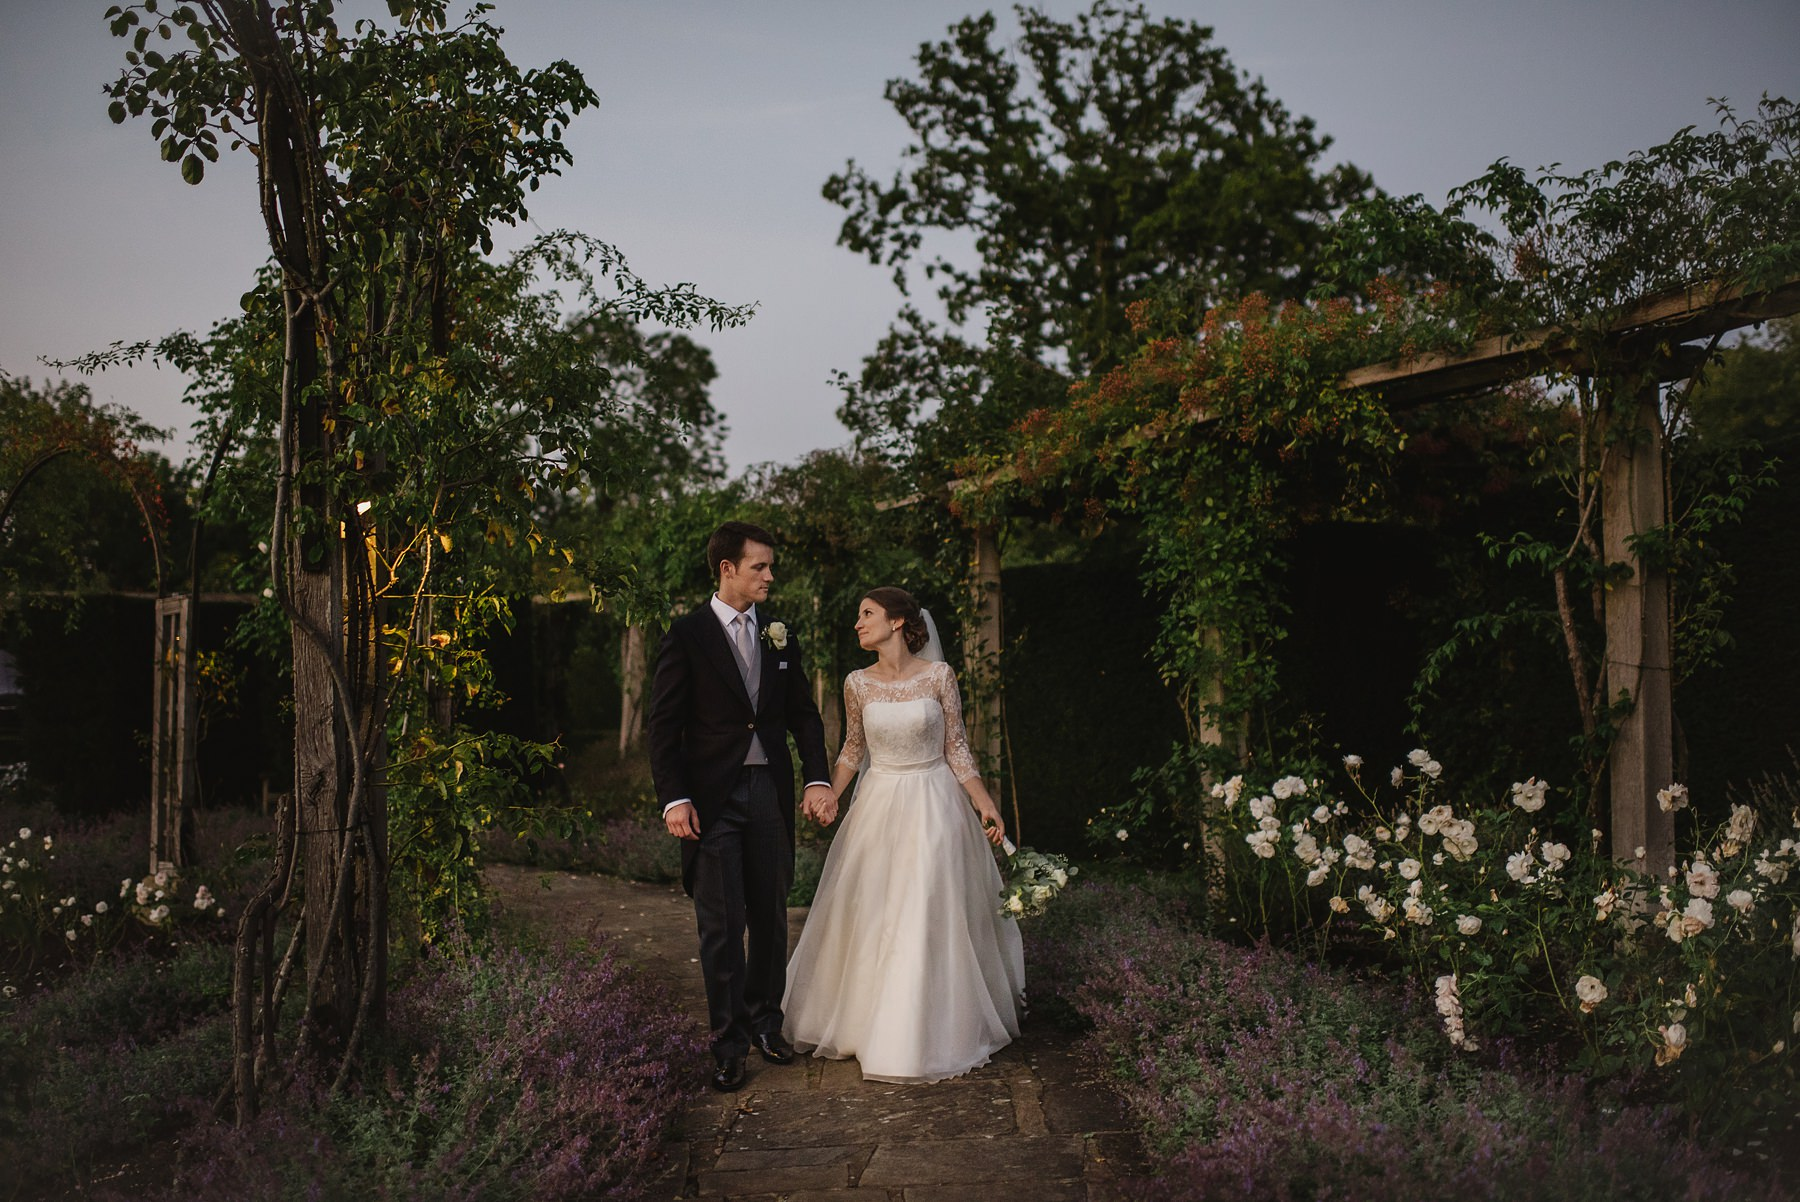 Great Fosters wedding photographer rose garden at Great Fosters